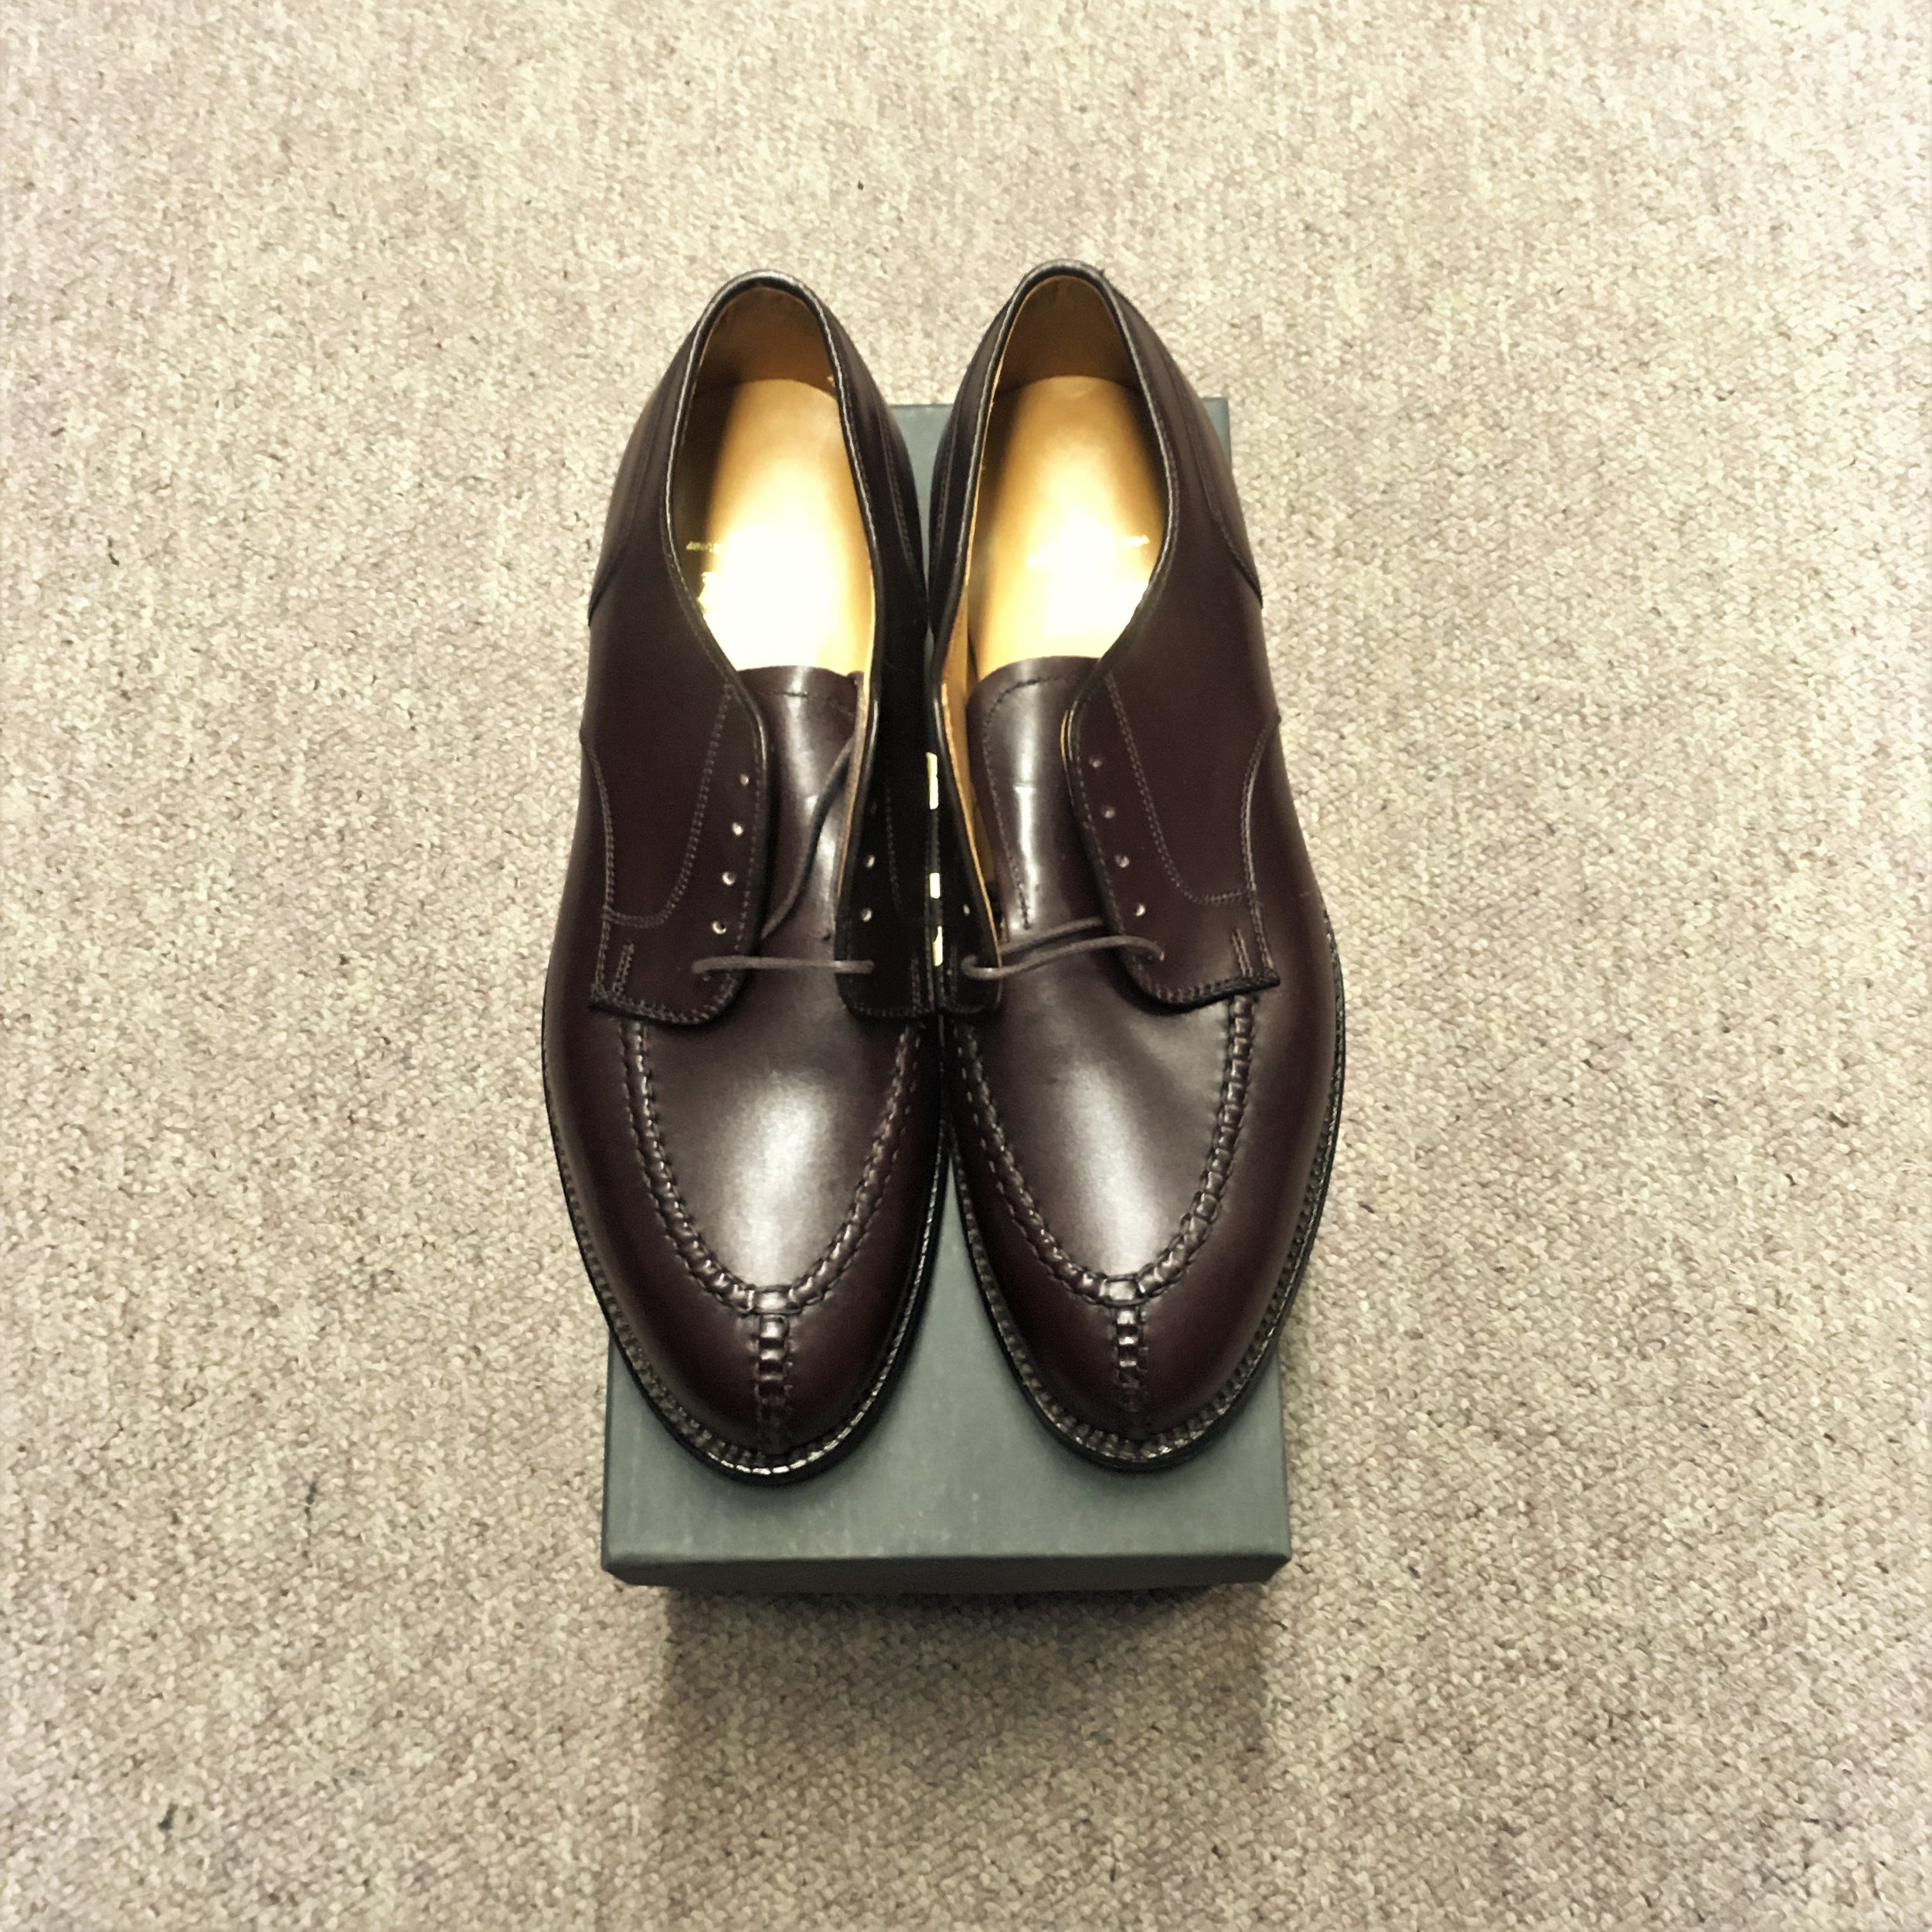 #964 - Aberdeen LastDark Burgundy Calfskin - NST - Leather SoleDiscontinued ModelLAST PAIRS SIZES 7EE & 9EEEMSRP $607Contact us for Pricing and Availability